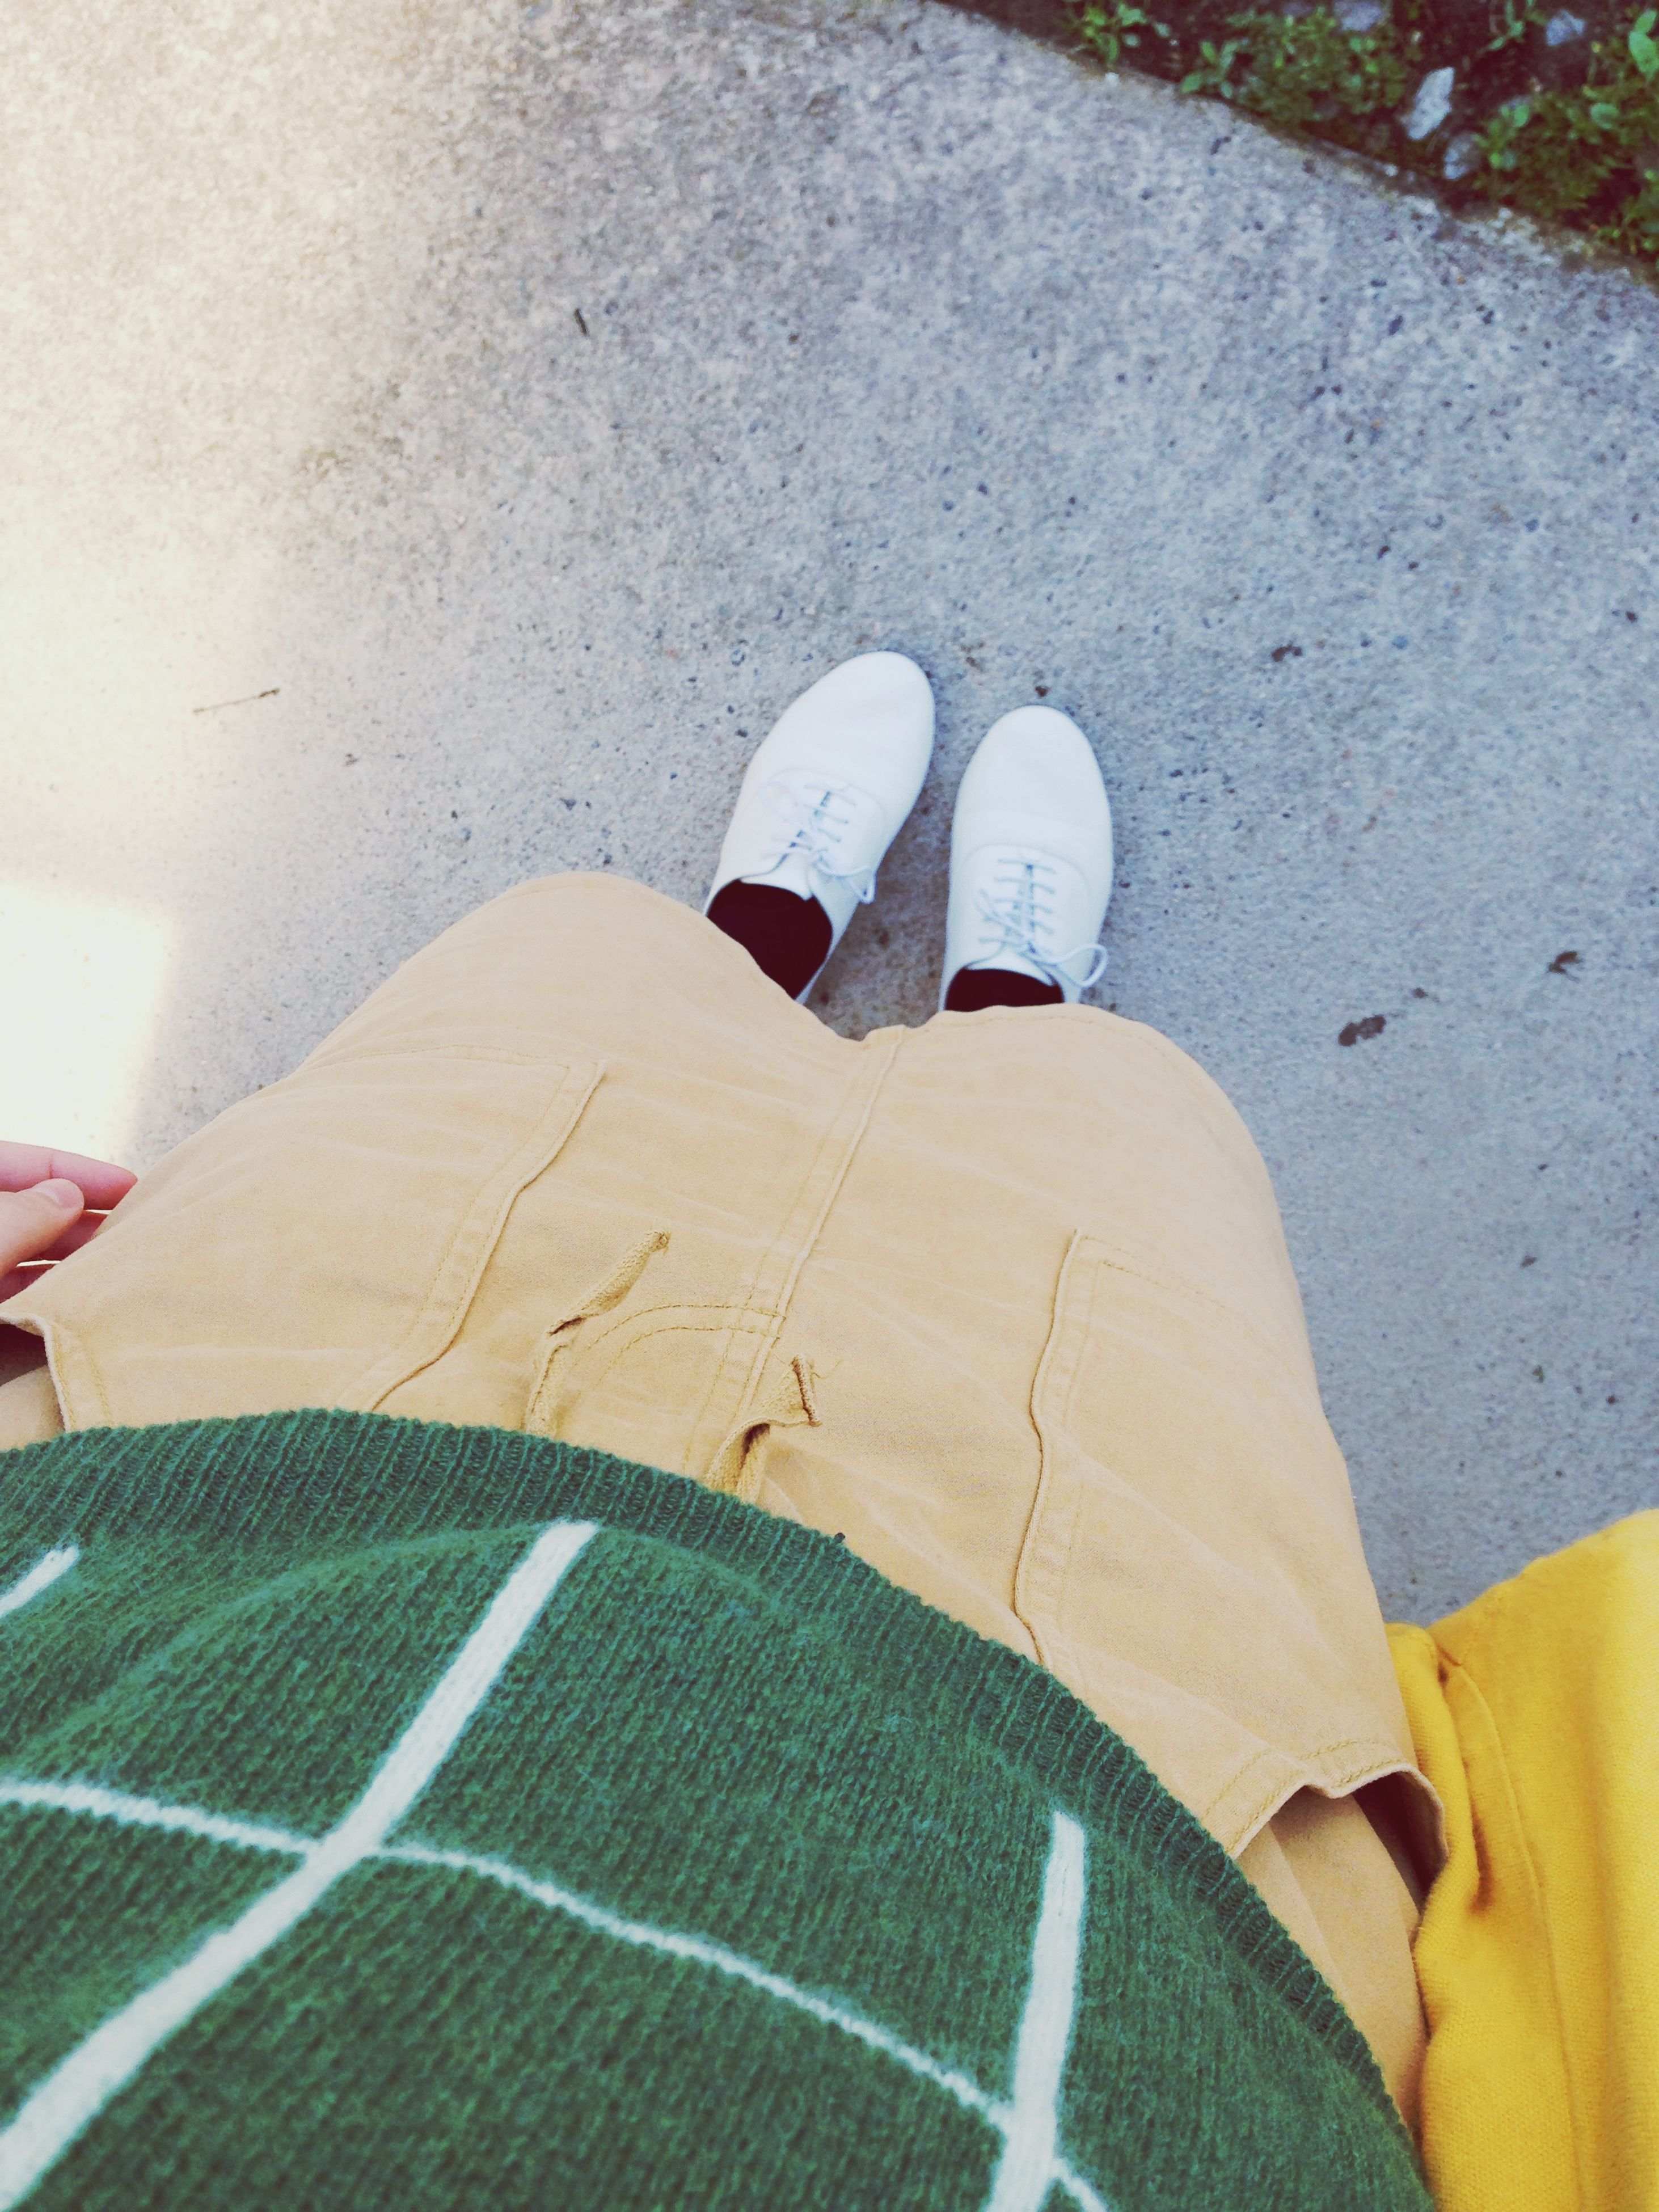 lifestyles, low section, person, shoe, leisure activity, personal perspective, high angle view, men, footwear, casual clothing, standing, jeans, street, sunlight, day, human foot, outdoors